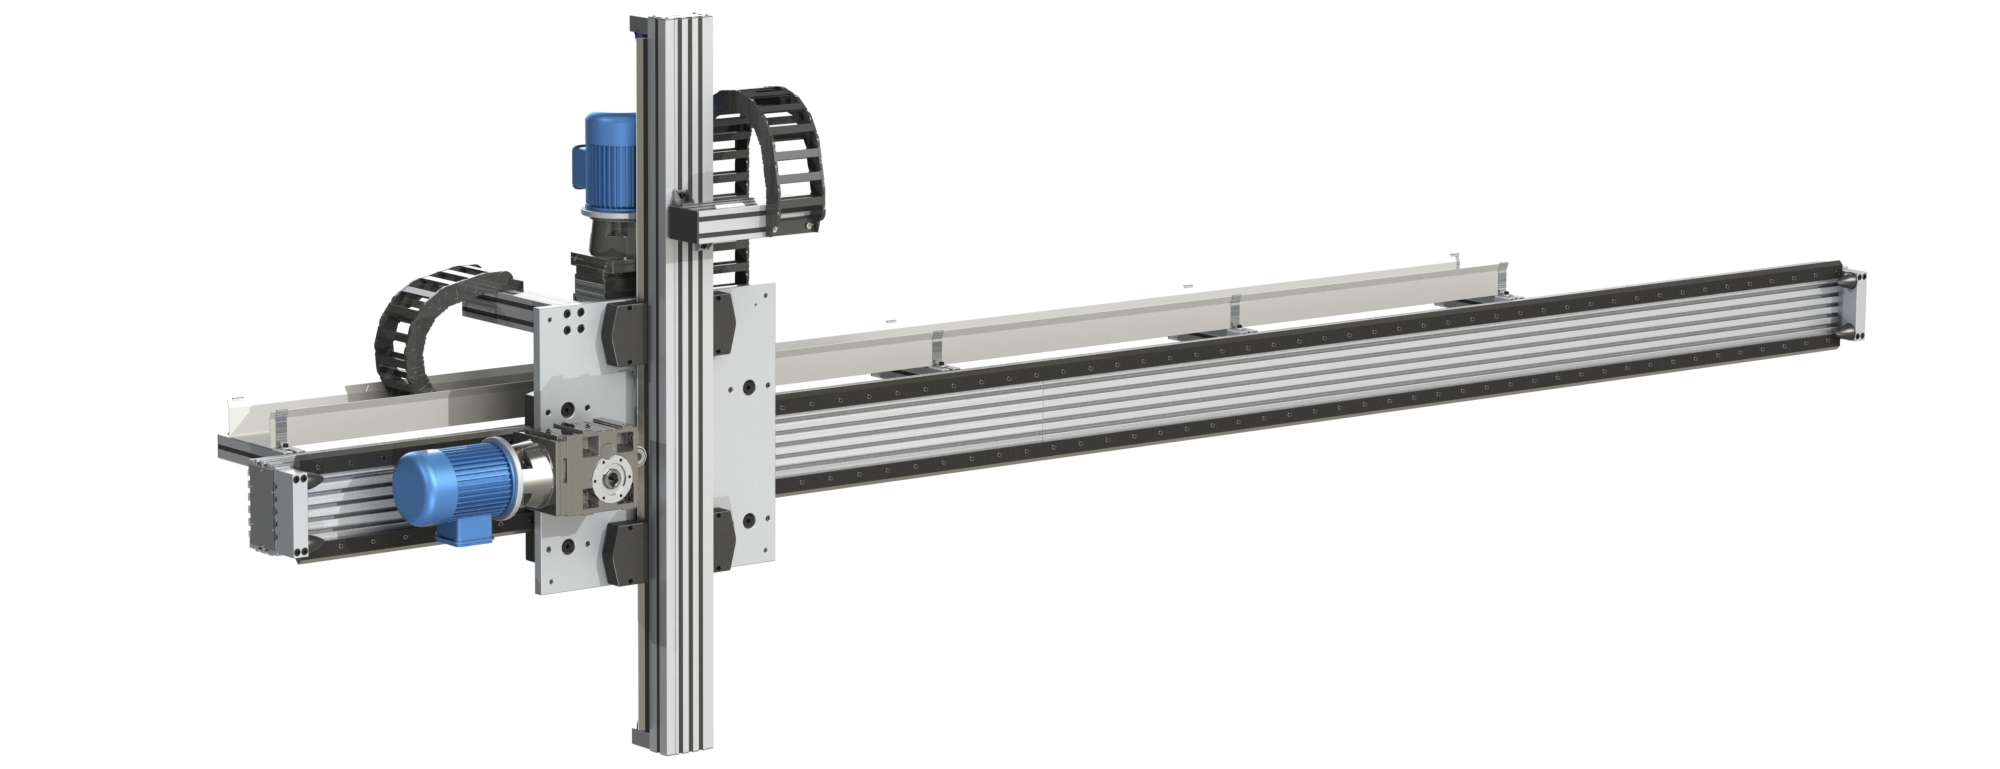 HDS2 Heavy Duty Linear Guides